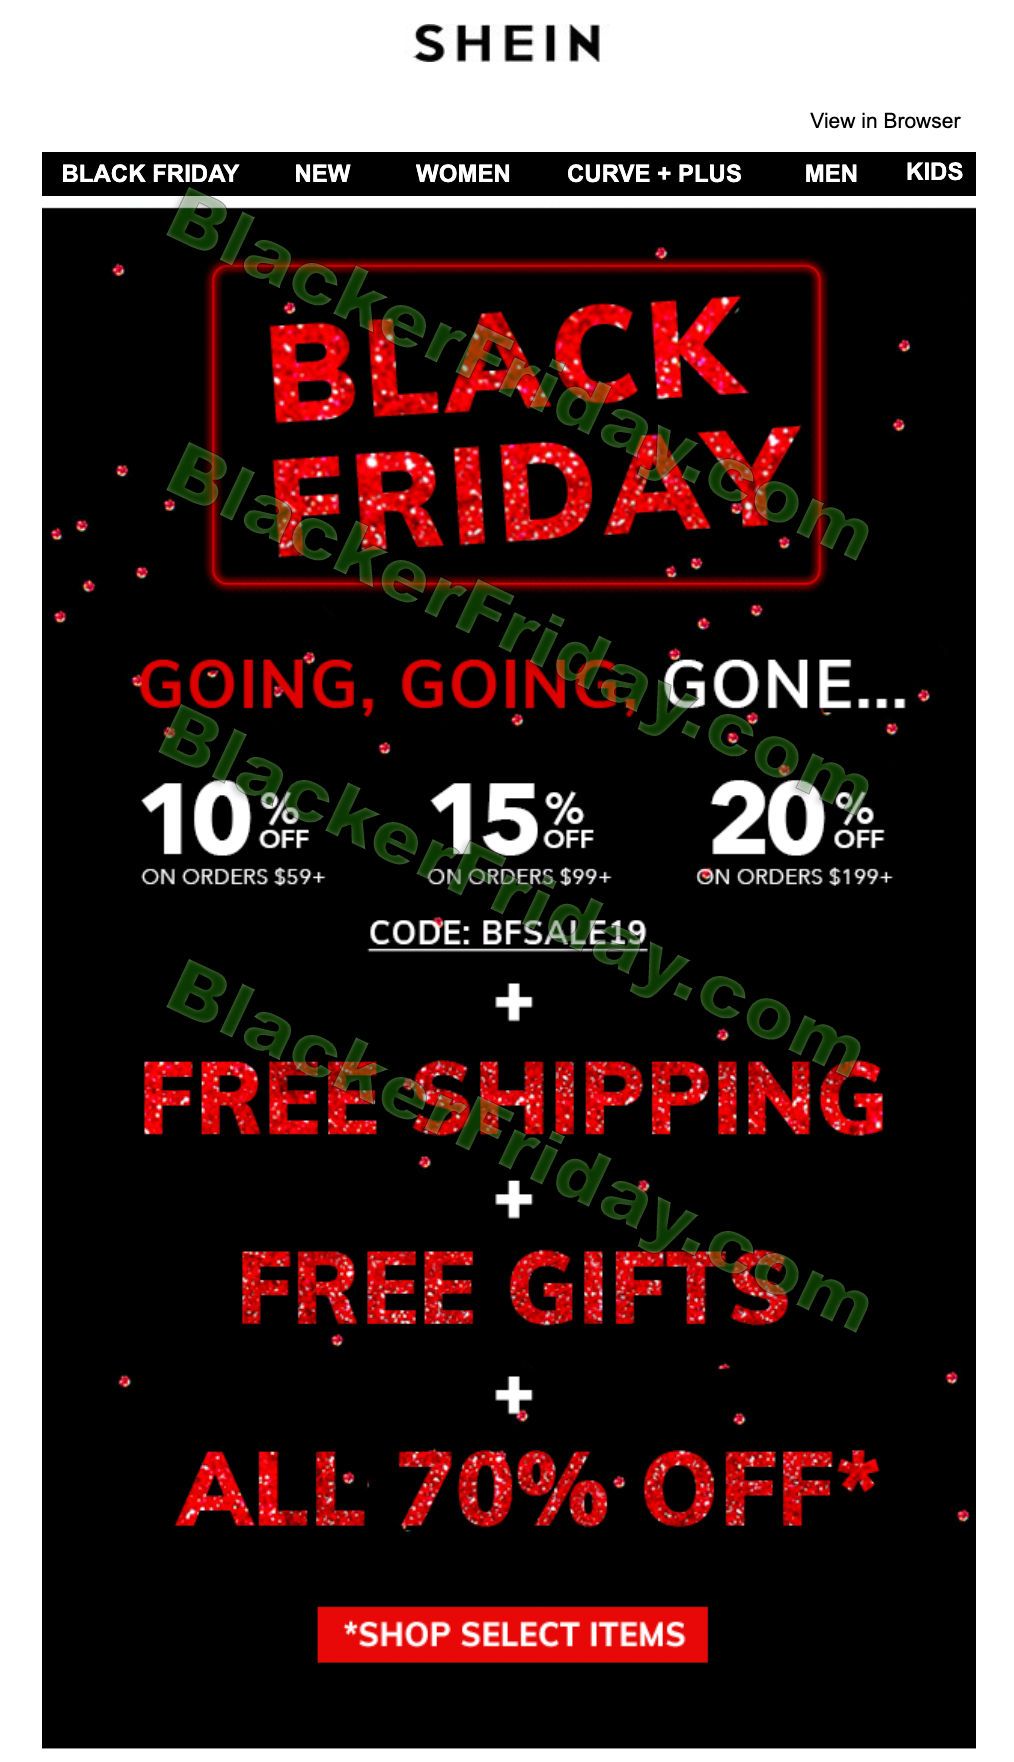 Shein Black Friday 2020 Sale What To Expect Blacker Friday